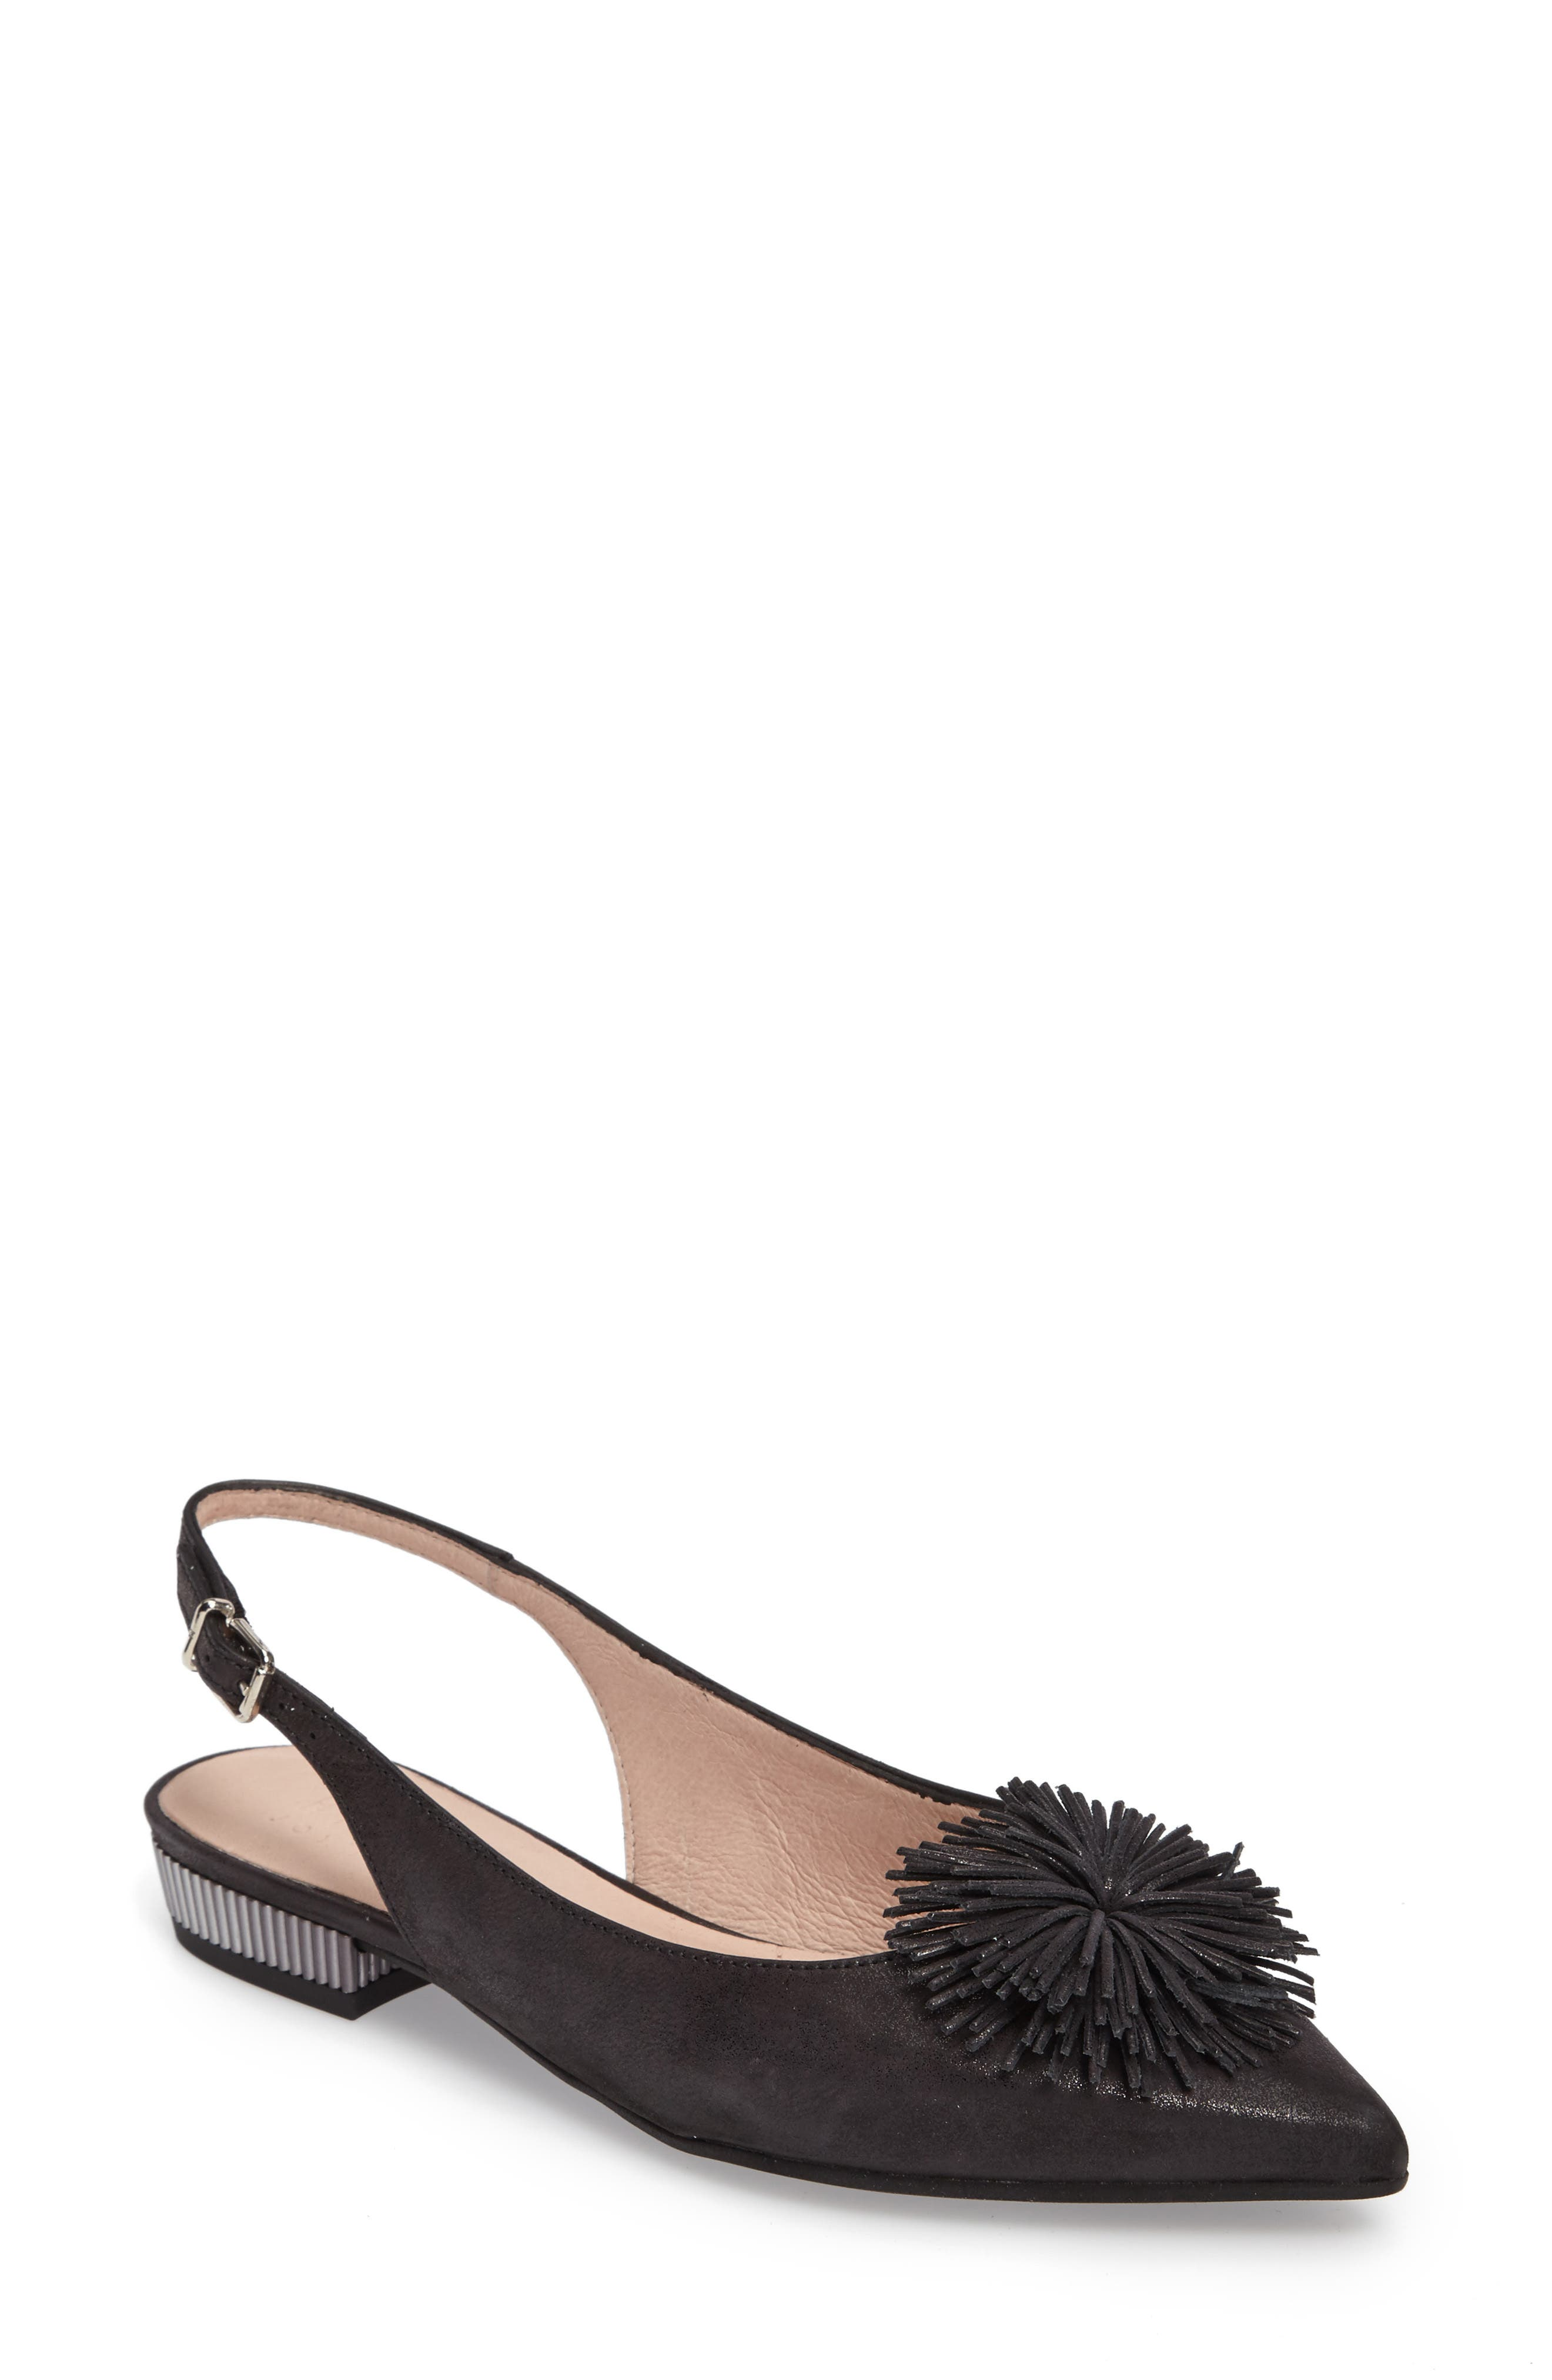 'Faylynn' Fringe Flower Slingback,                             Main thumbnail 1, color,                             MAGIC BLACK LEATHER